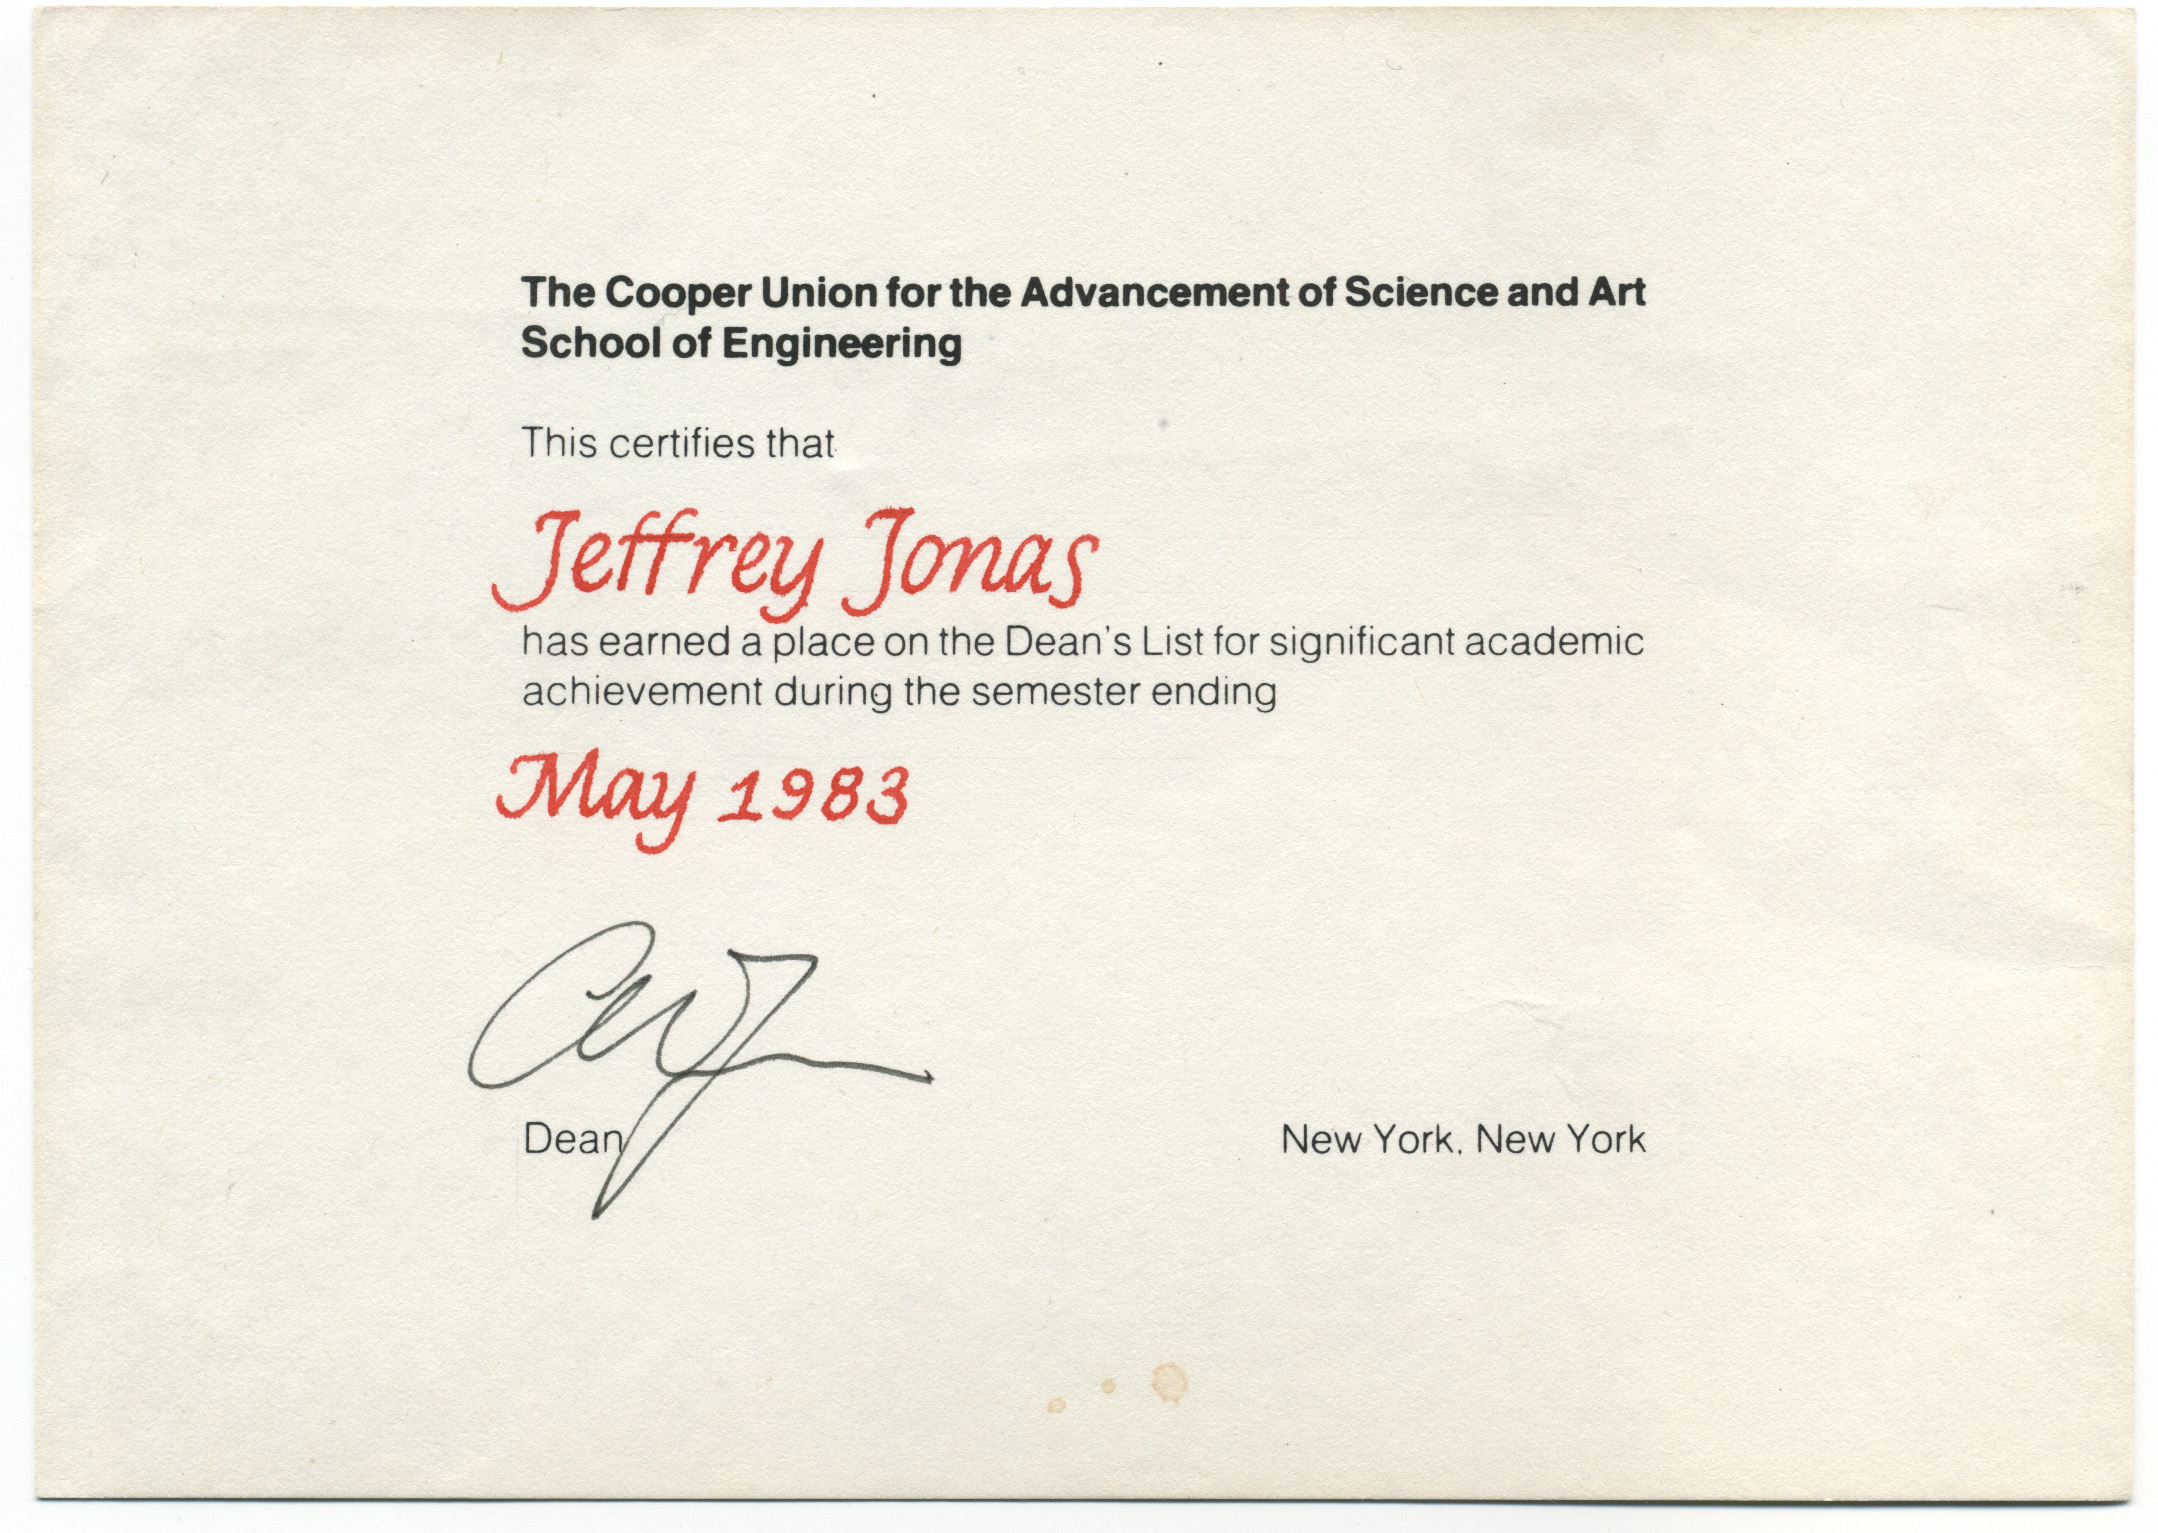 jeffrey jonas certifications degrees diplomas honors the cooper union dean s list